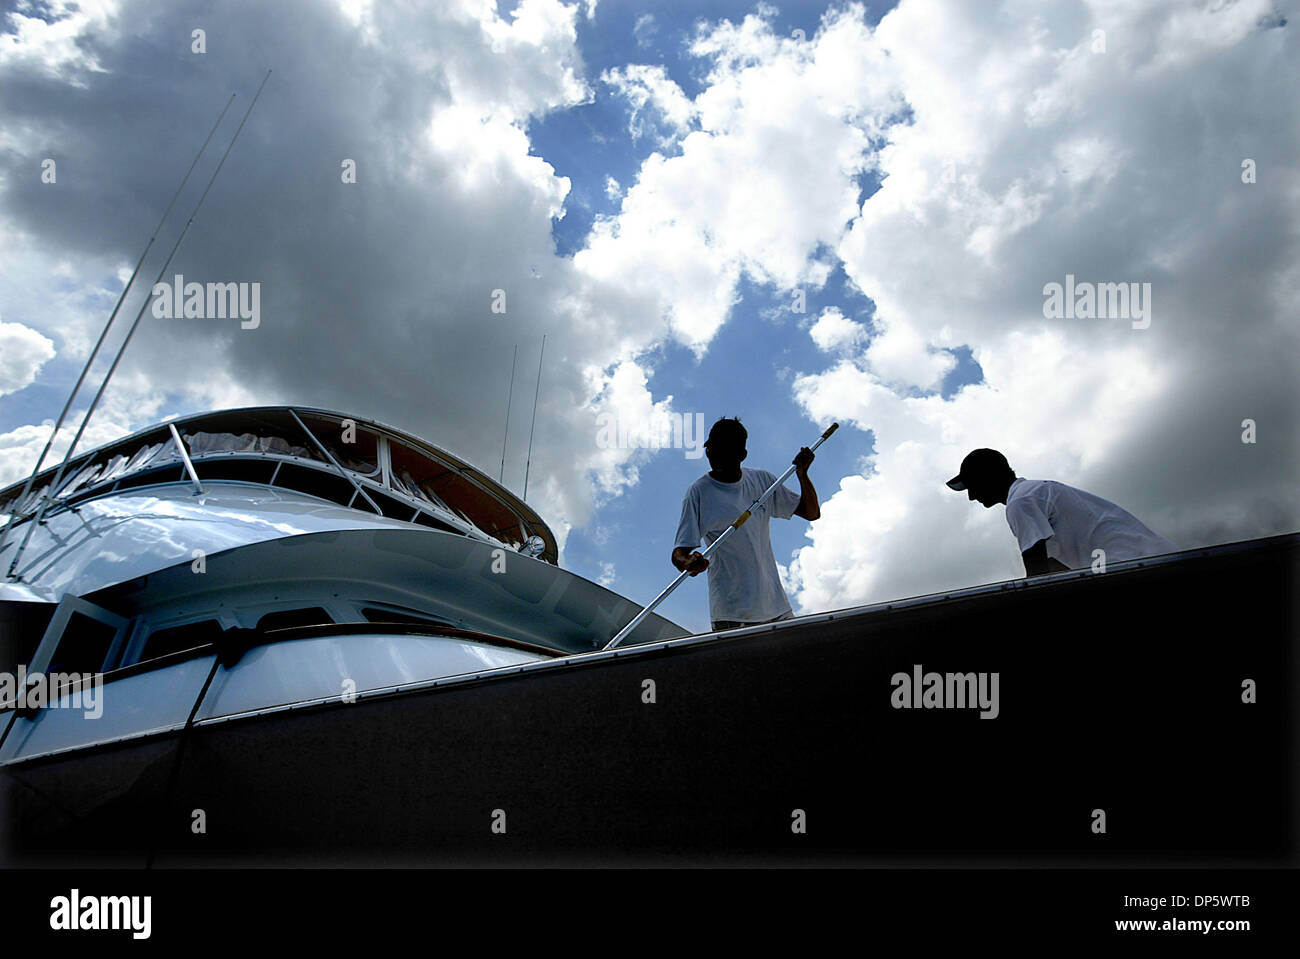 Sep 26, 2006; Palm Beach, FL, USA; Daniel Ross (L), 21, and his younger brother Alex, 19, work Tuesday afternoon to wash down the Azucar, a 100 ft. Poole Chaffe boat docked on Palm Beach Island.  The brothers, who live on Singer Island, have been detailing boats since their early teens.  They operate their own business called Ocean Spray Detailing and said, 'The money from the busi - Stock Image